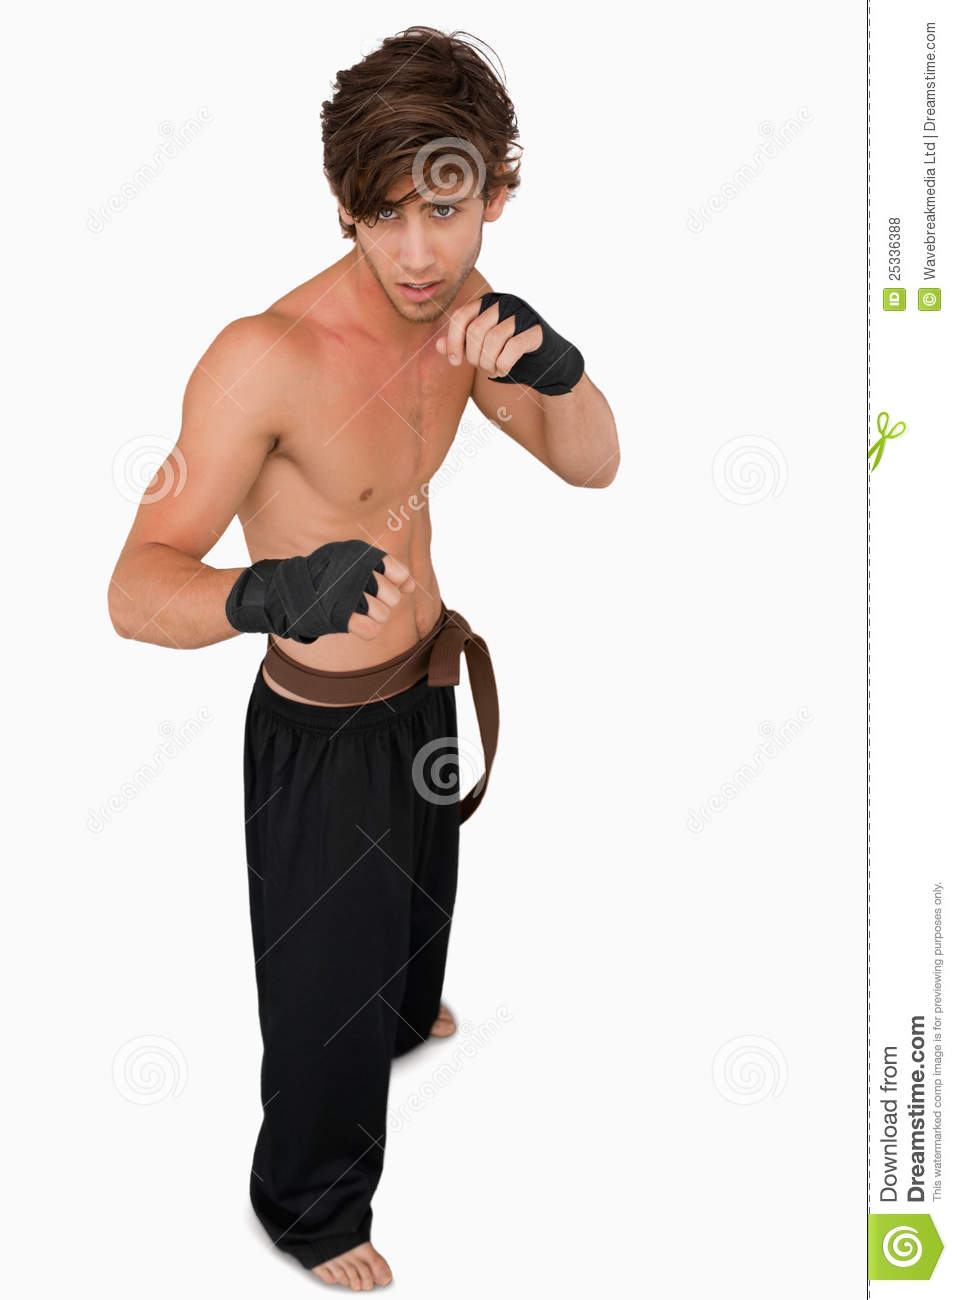 How to Get Into a Fighting Stance